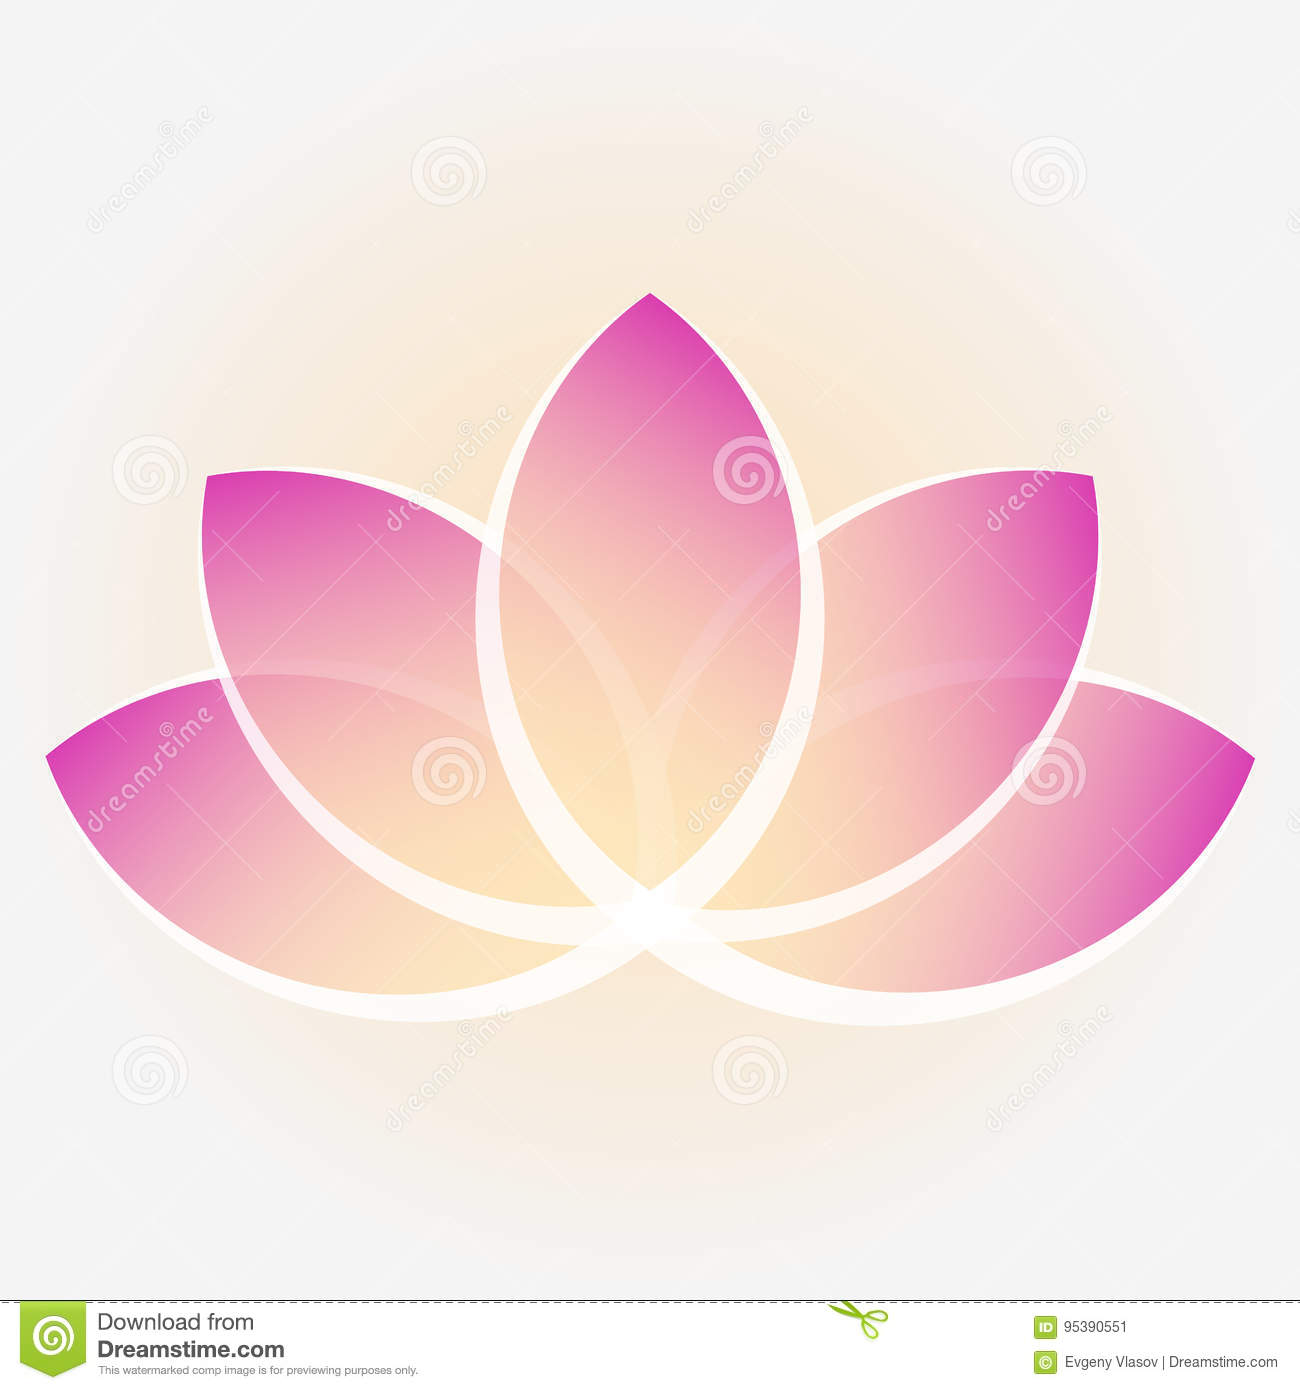 A Lotus Flower With Yellow Purple Petals Image For Logos Stock